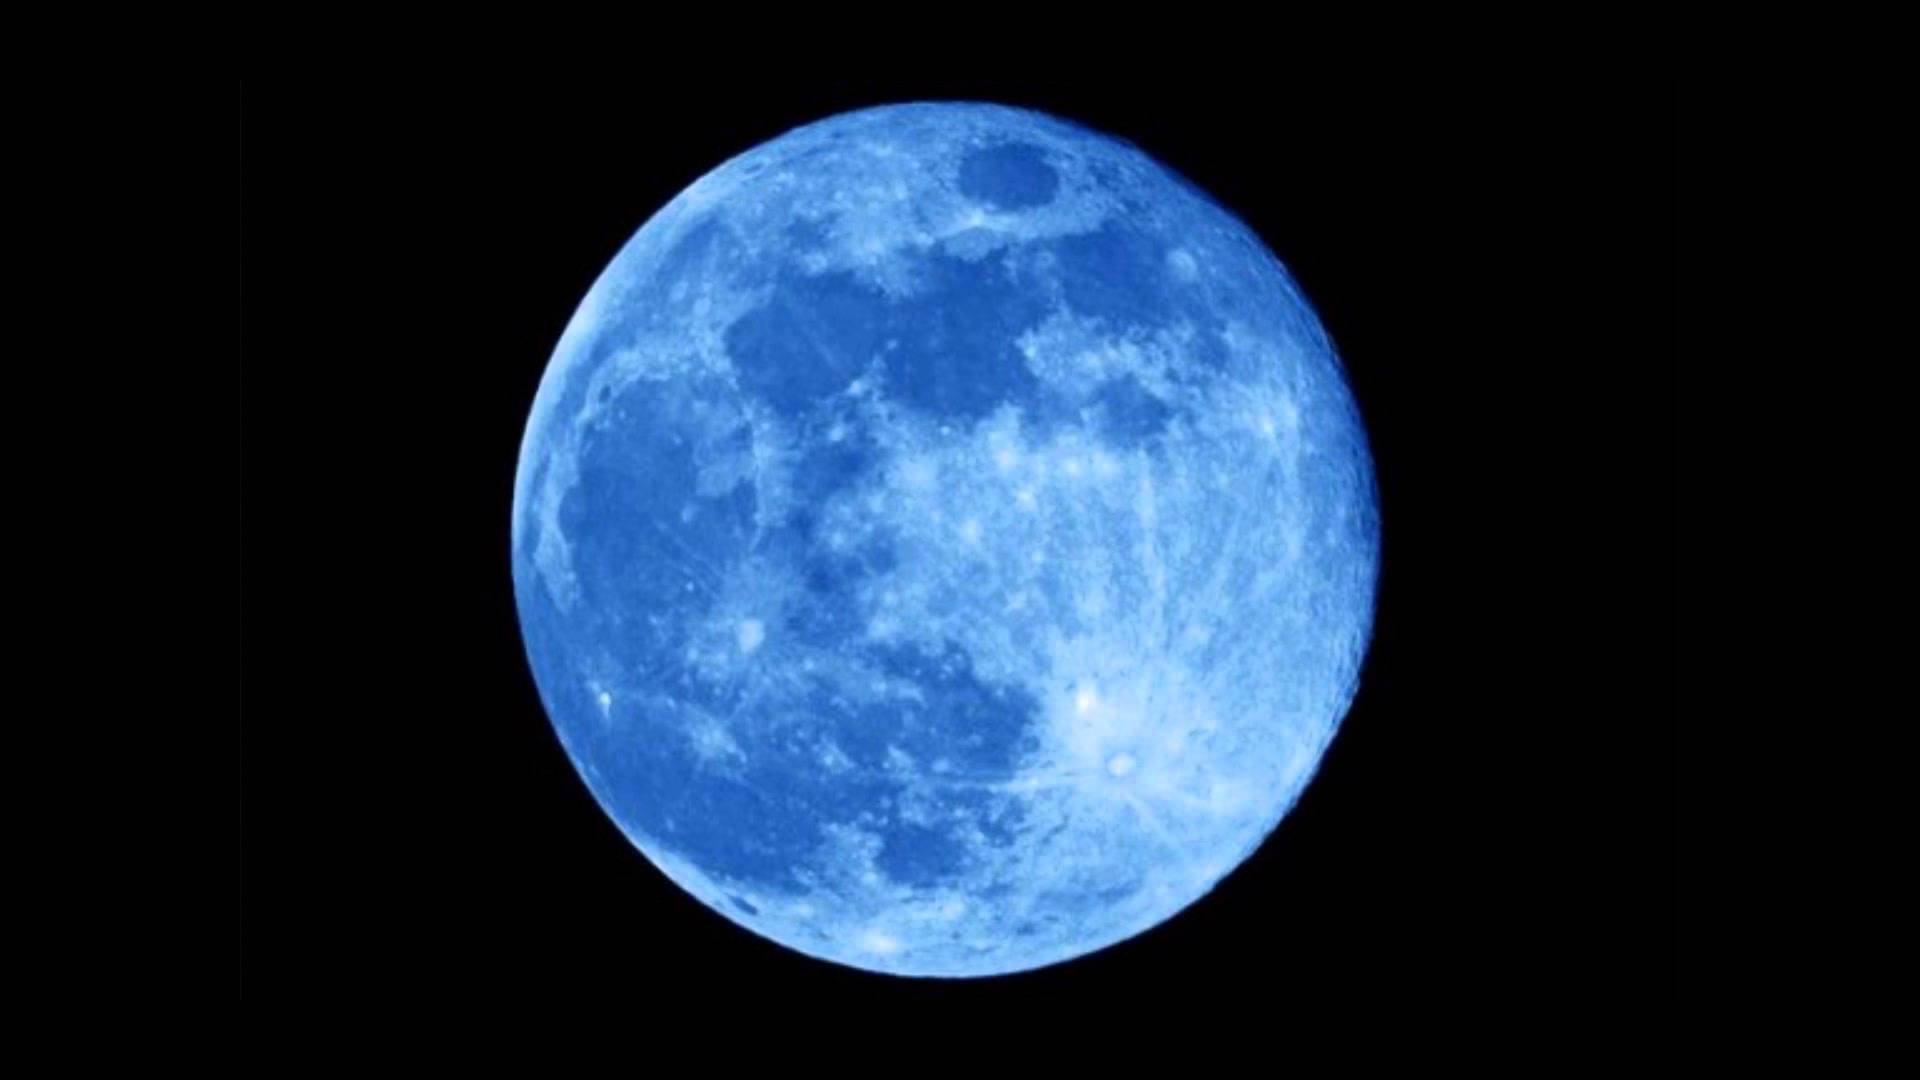 When does a Blue Moon occur?